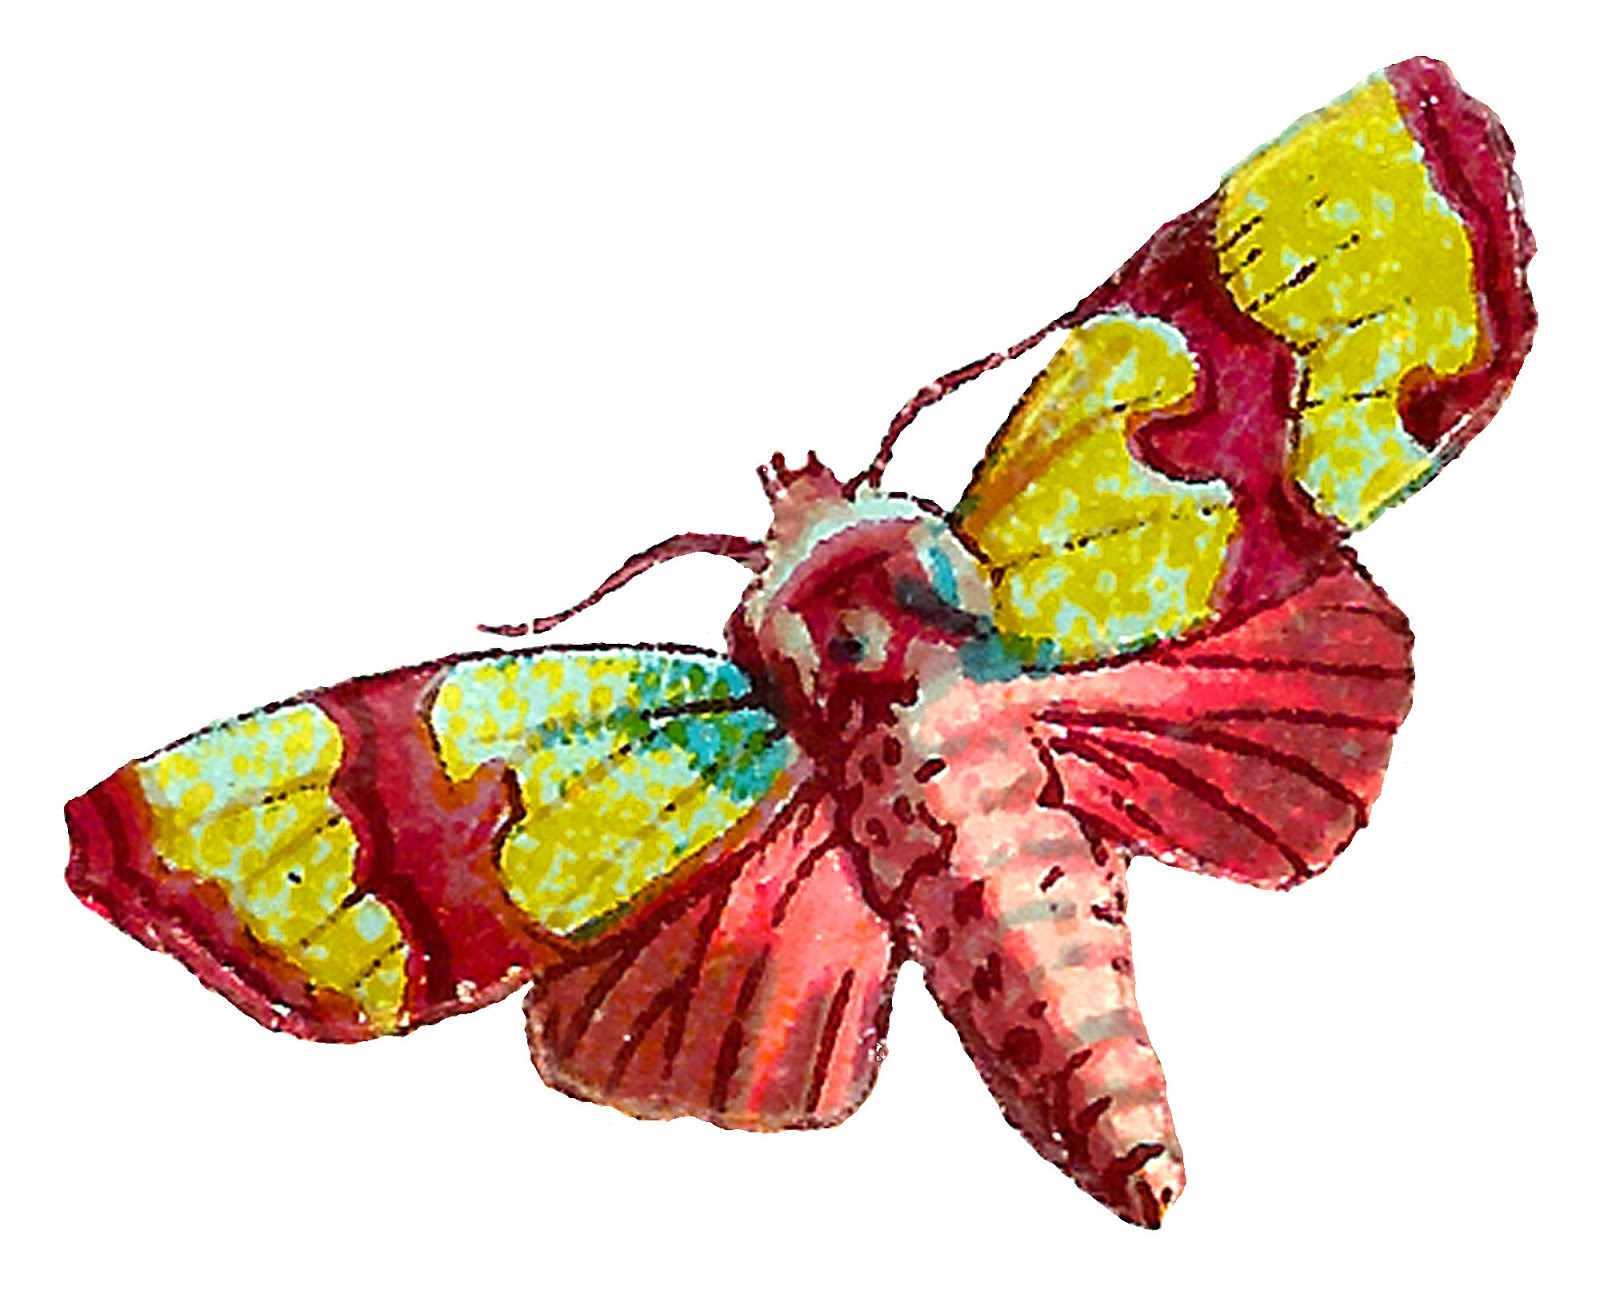 Insect Clipart | Free download best Insect Clipart on